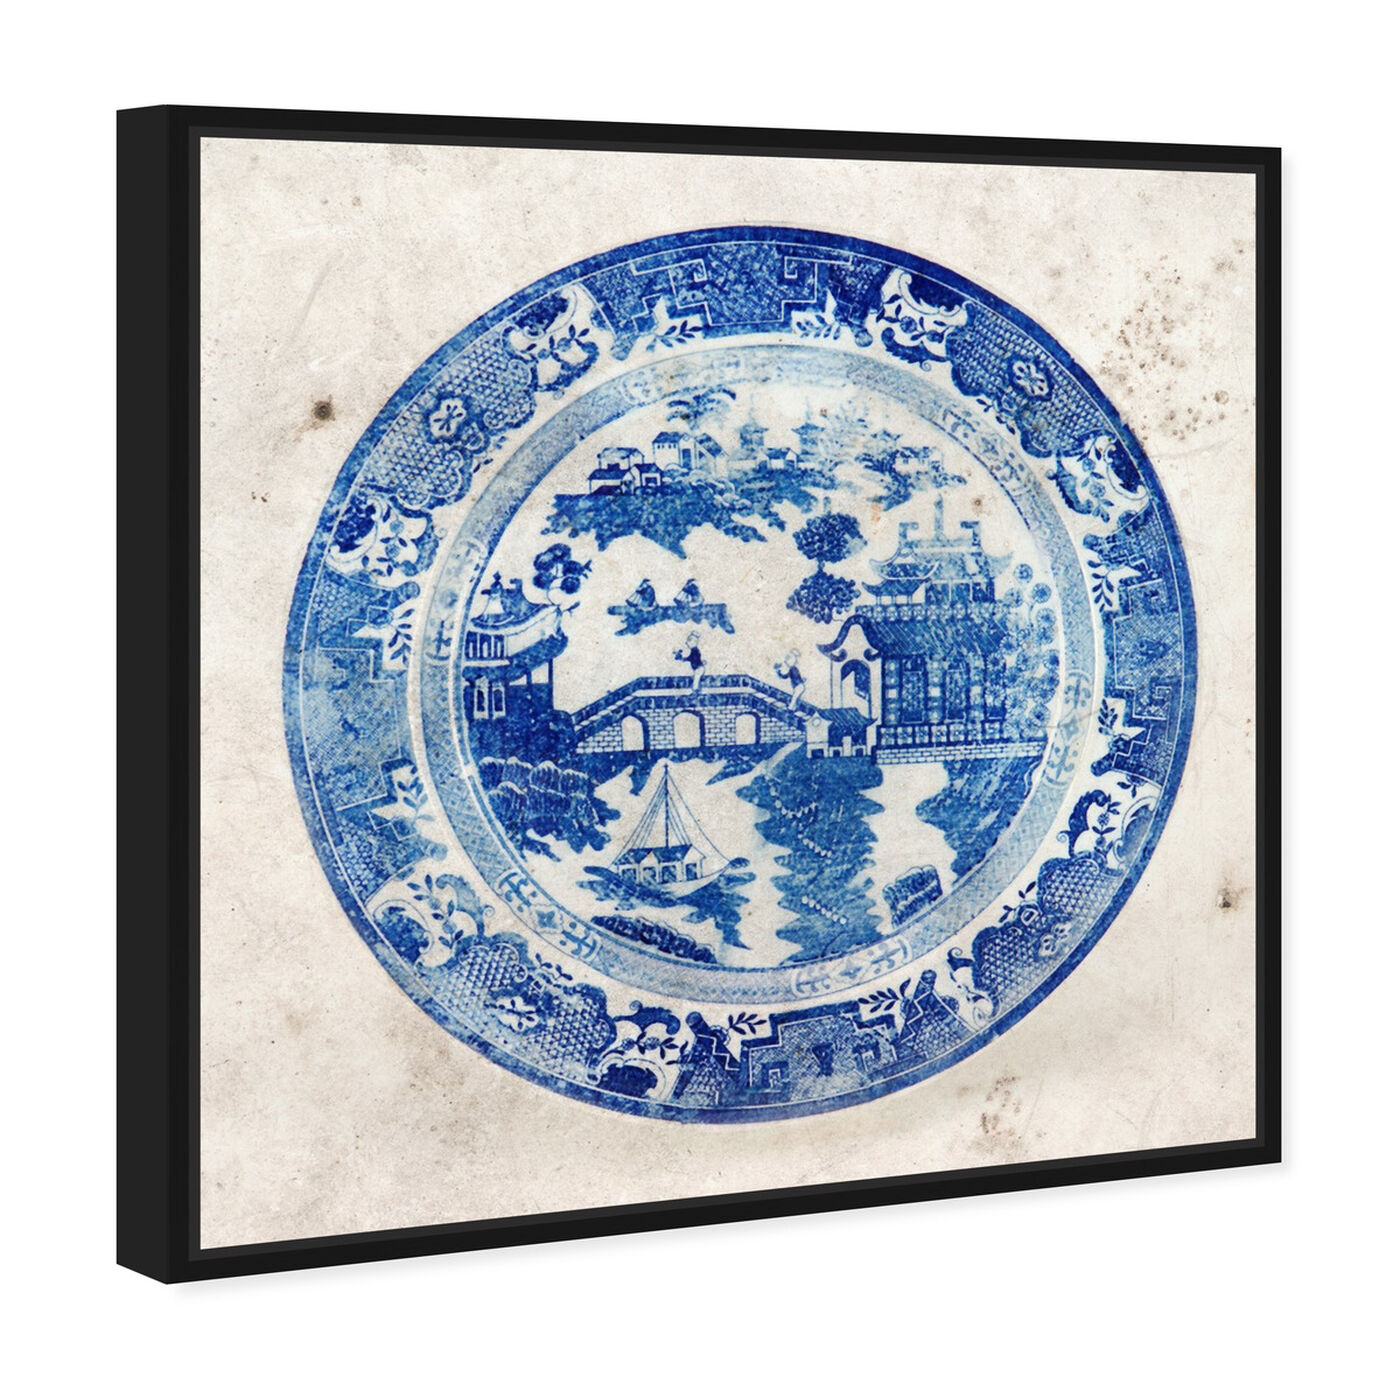 Angled view of Fajans China featuring world and countries and asian cultures art.